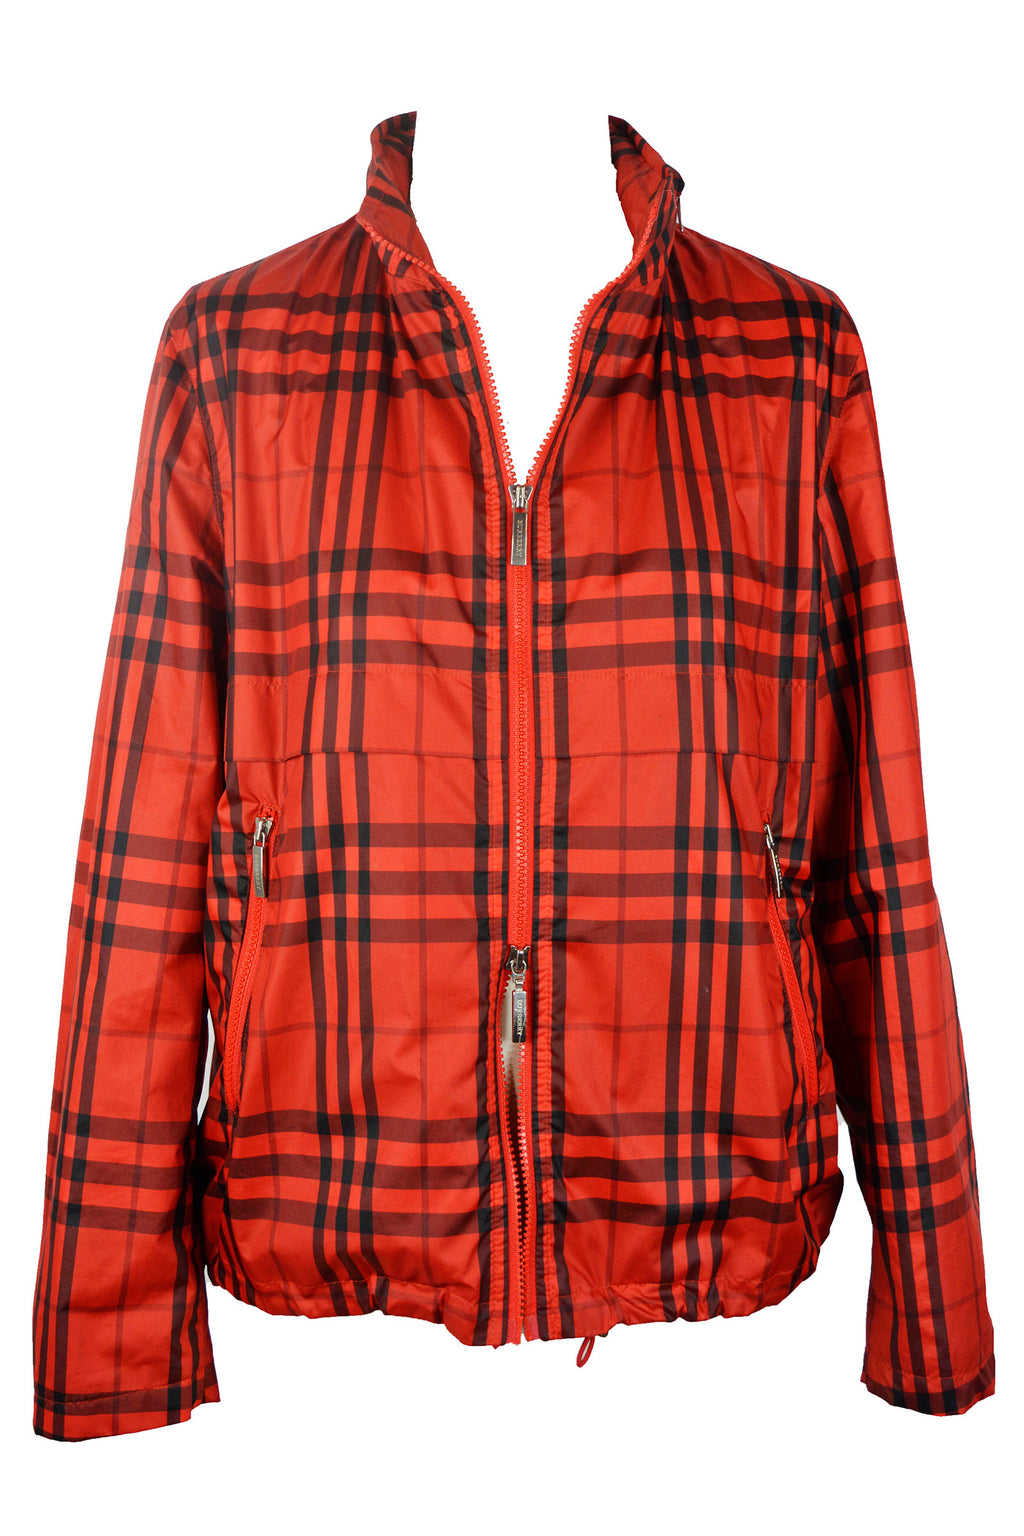 Burberry Impermeable Jacket in Red and Black Check and Zipped Hood Size 40 (EU)